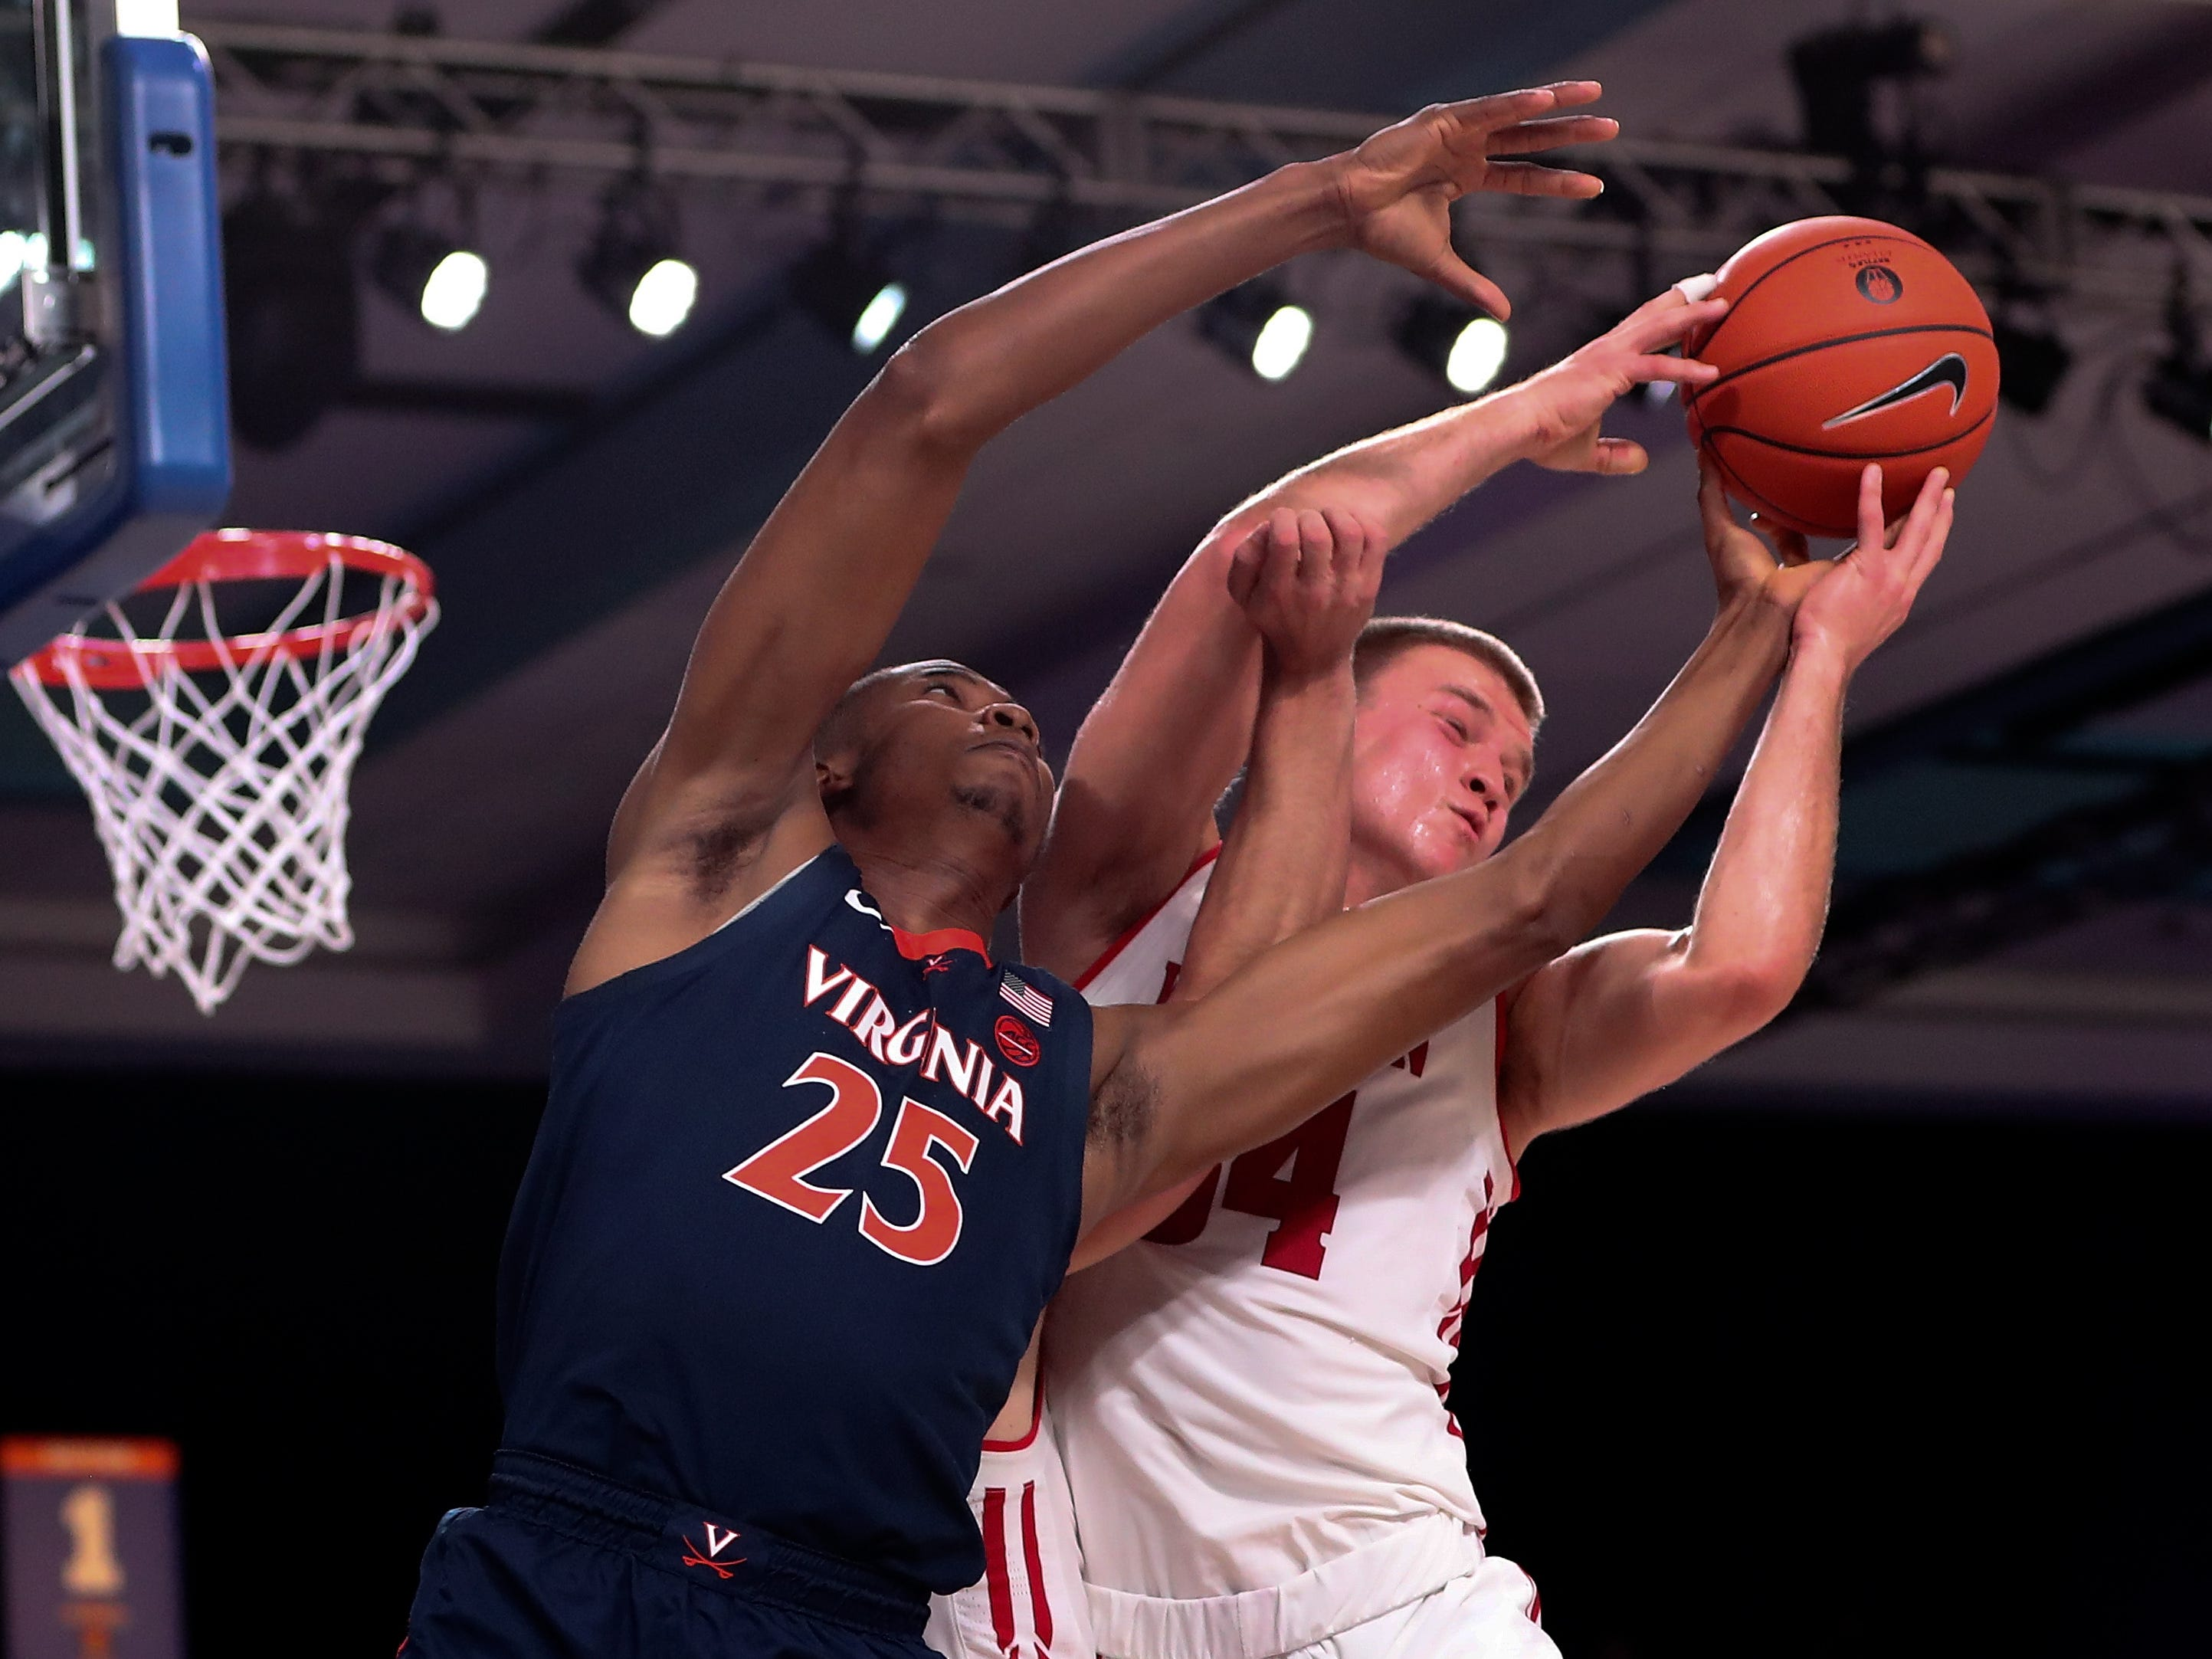 Badgers guard Brad Davison and Virginia Cavaliers forward Mamadi Diakite battle for a loose ball.